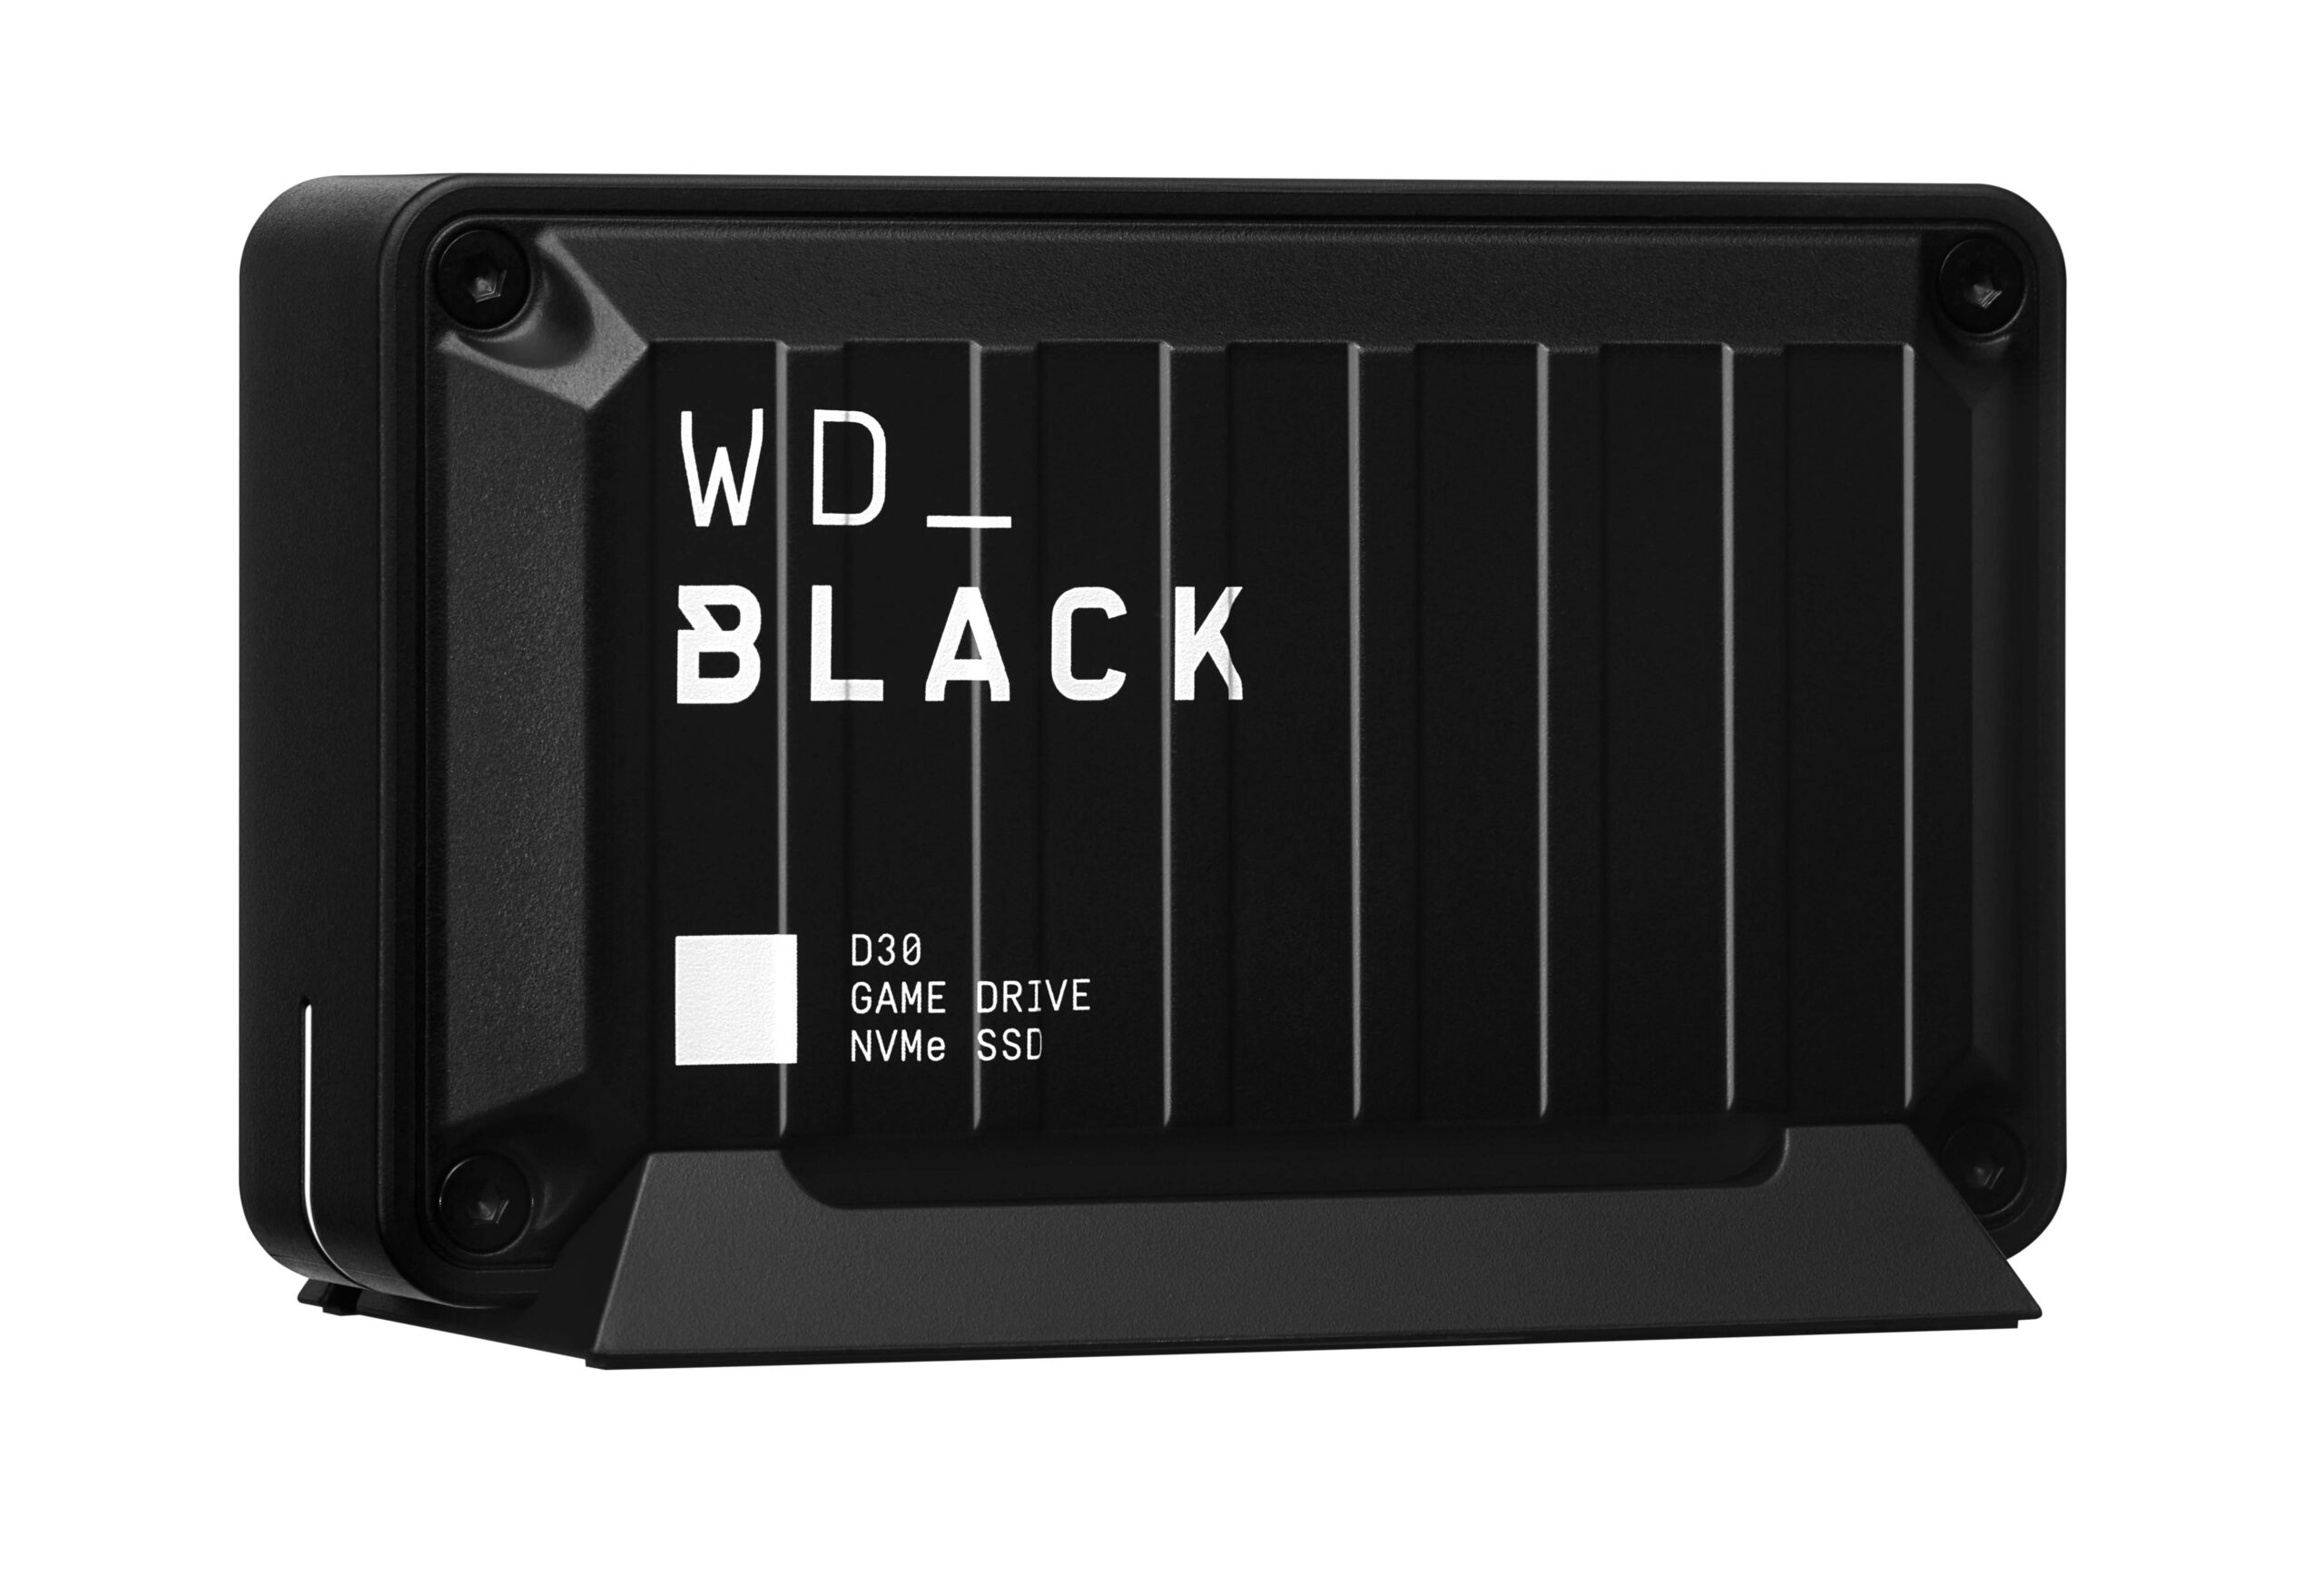 Product front WD BLACK D30 Game Drive SSD 1 scaled